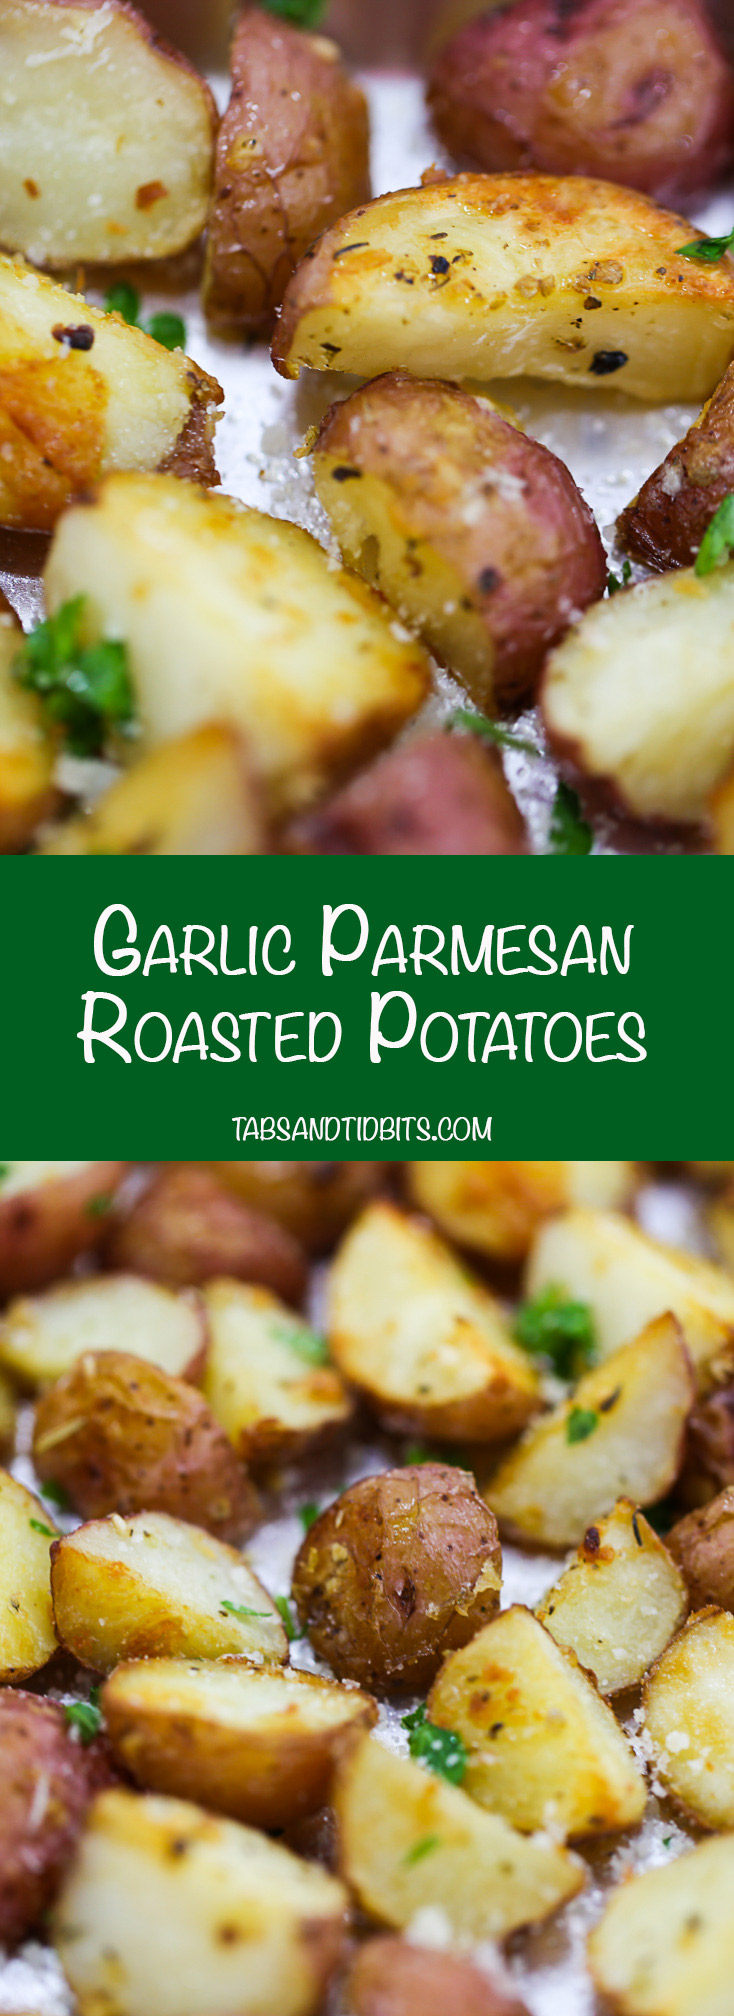 parmesan roasted potatoes roasted garlic parmesan potatoes tasty 30230